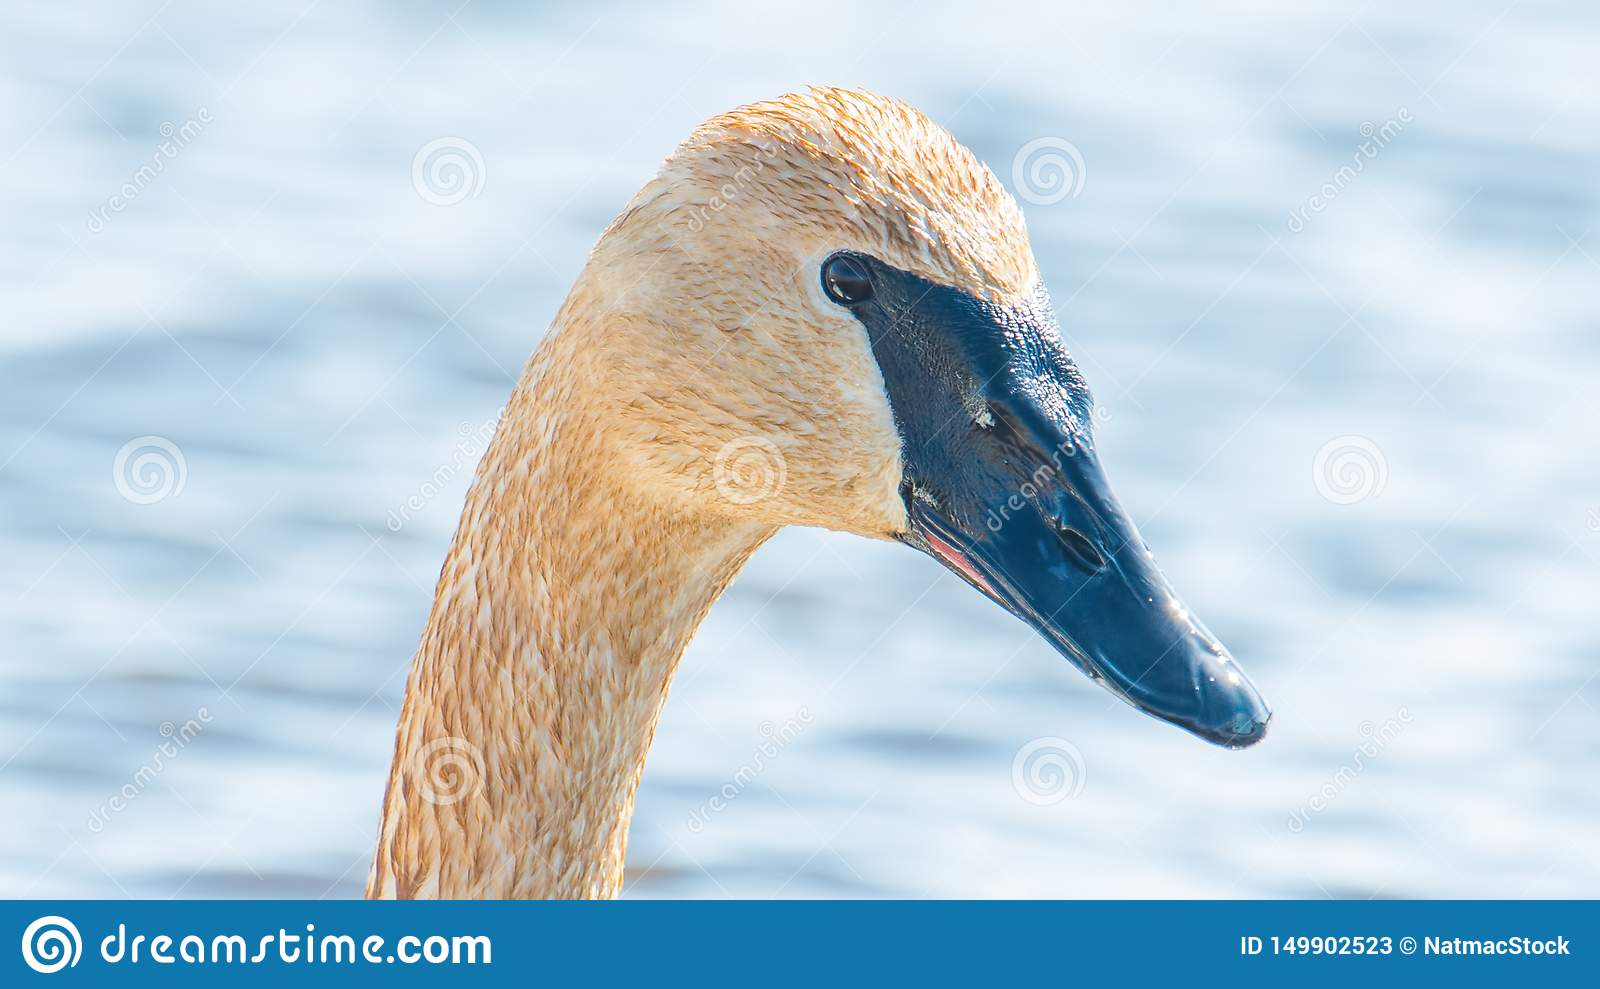 Closeup portrait of trumpeter swan head with detail of beautiful plumage, eye, and beak - in early Spring during migration - taken